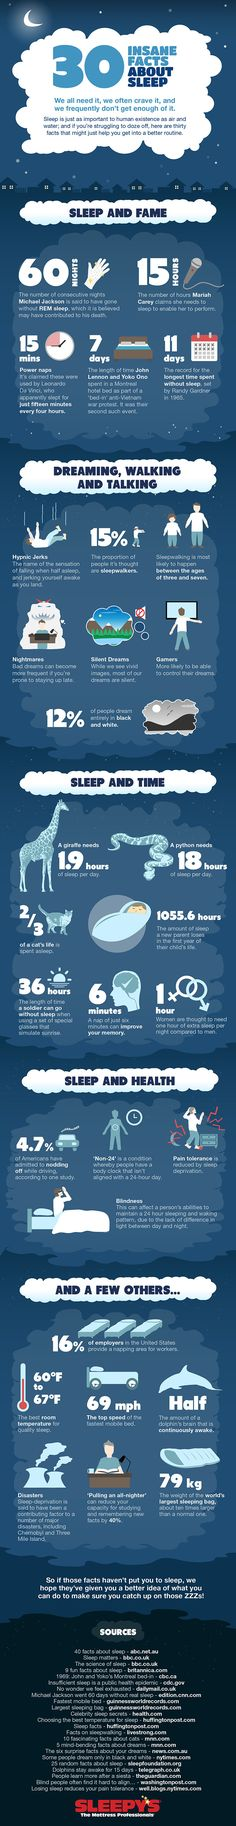 30 Insane Facts About Sleep [Infographic], brought to you by Sleepy's, The Mattress Professionals.